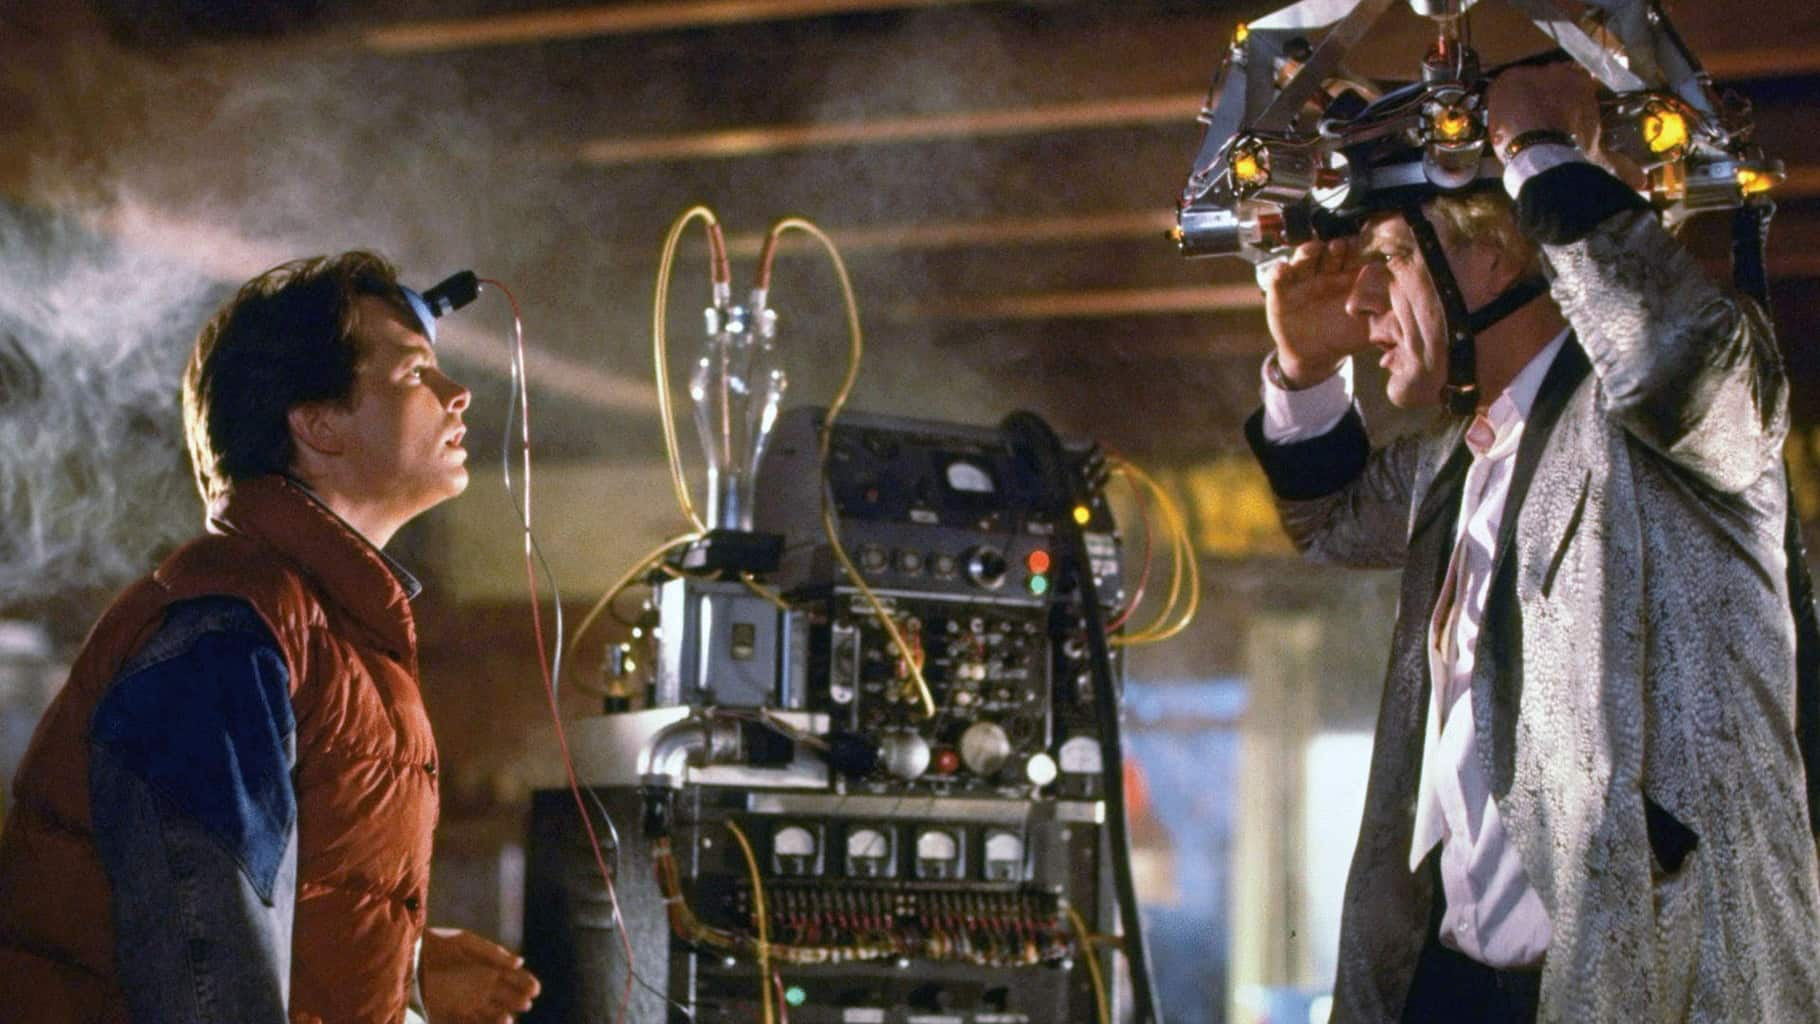 film reviews | movies | features | BRWC EIFF & RSNO PRESENT 30th ANNIVERSARY BACK TO THE FUTURE